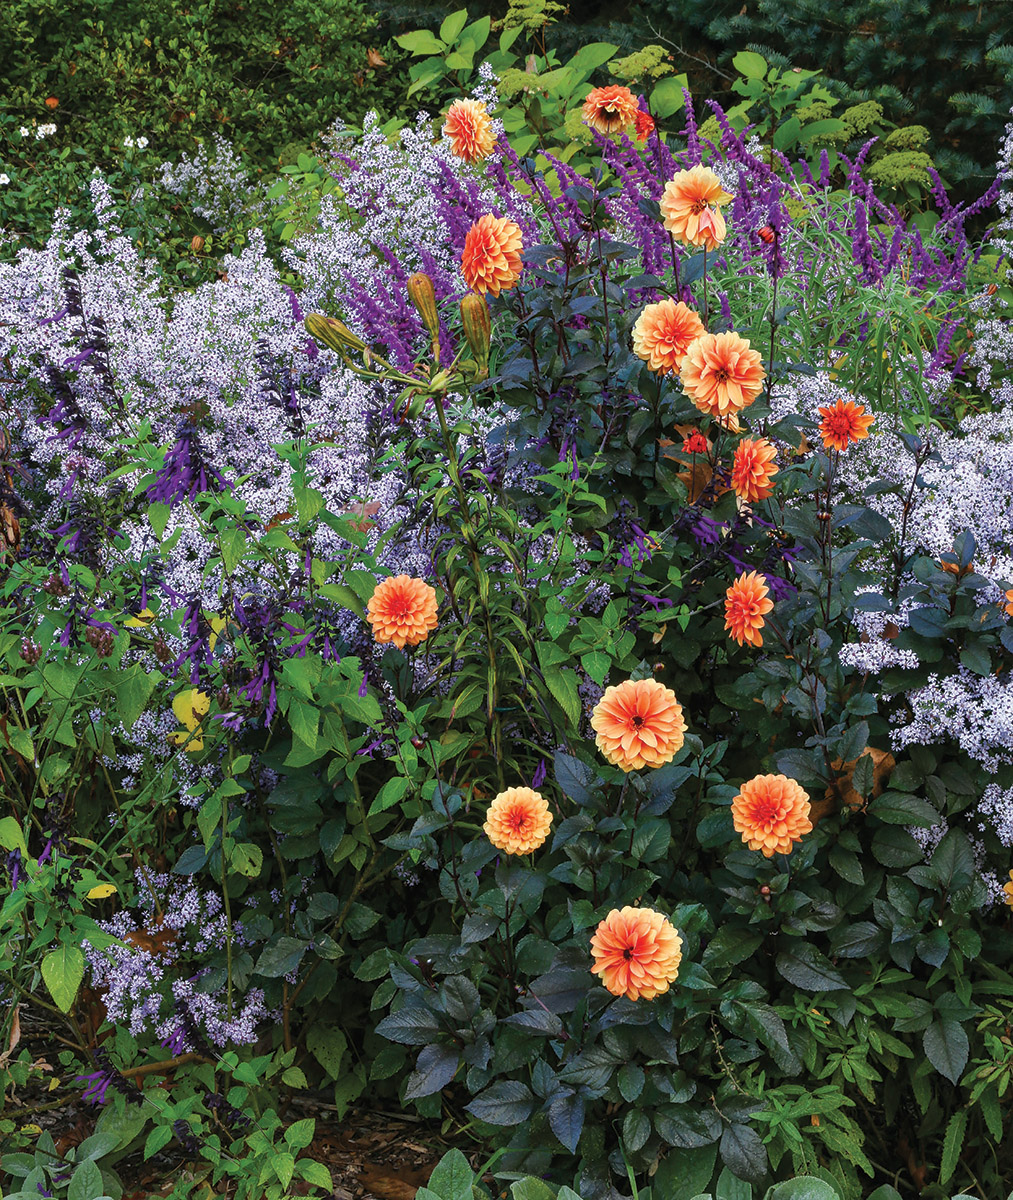 A flowering garden scene showing a mix of orange, purple and silver colors